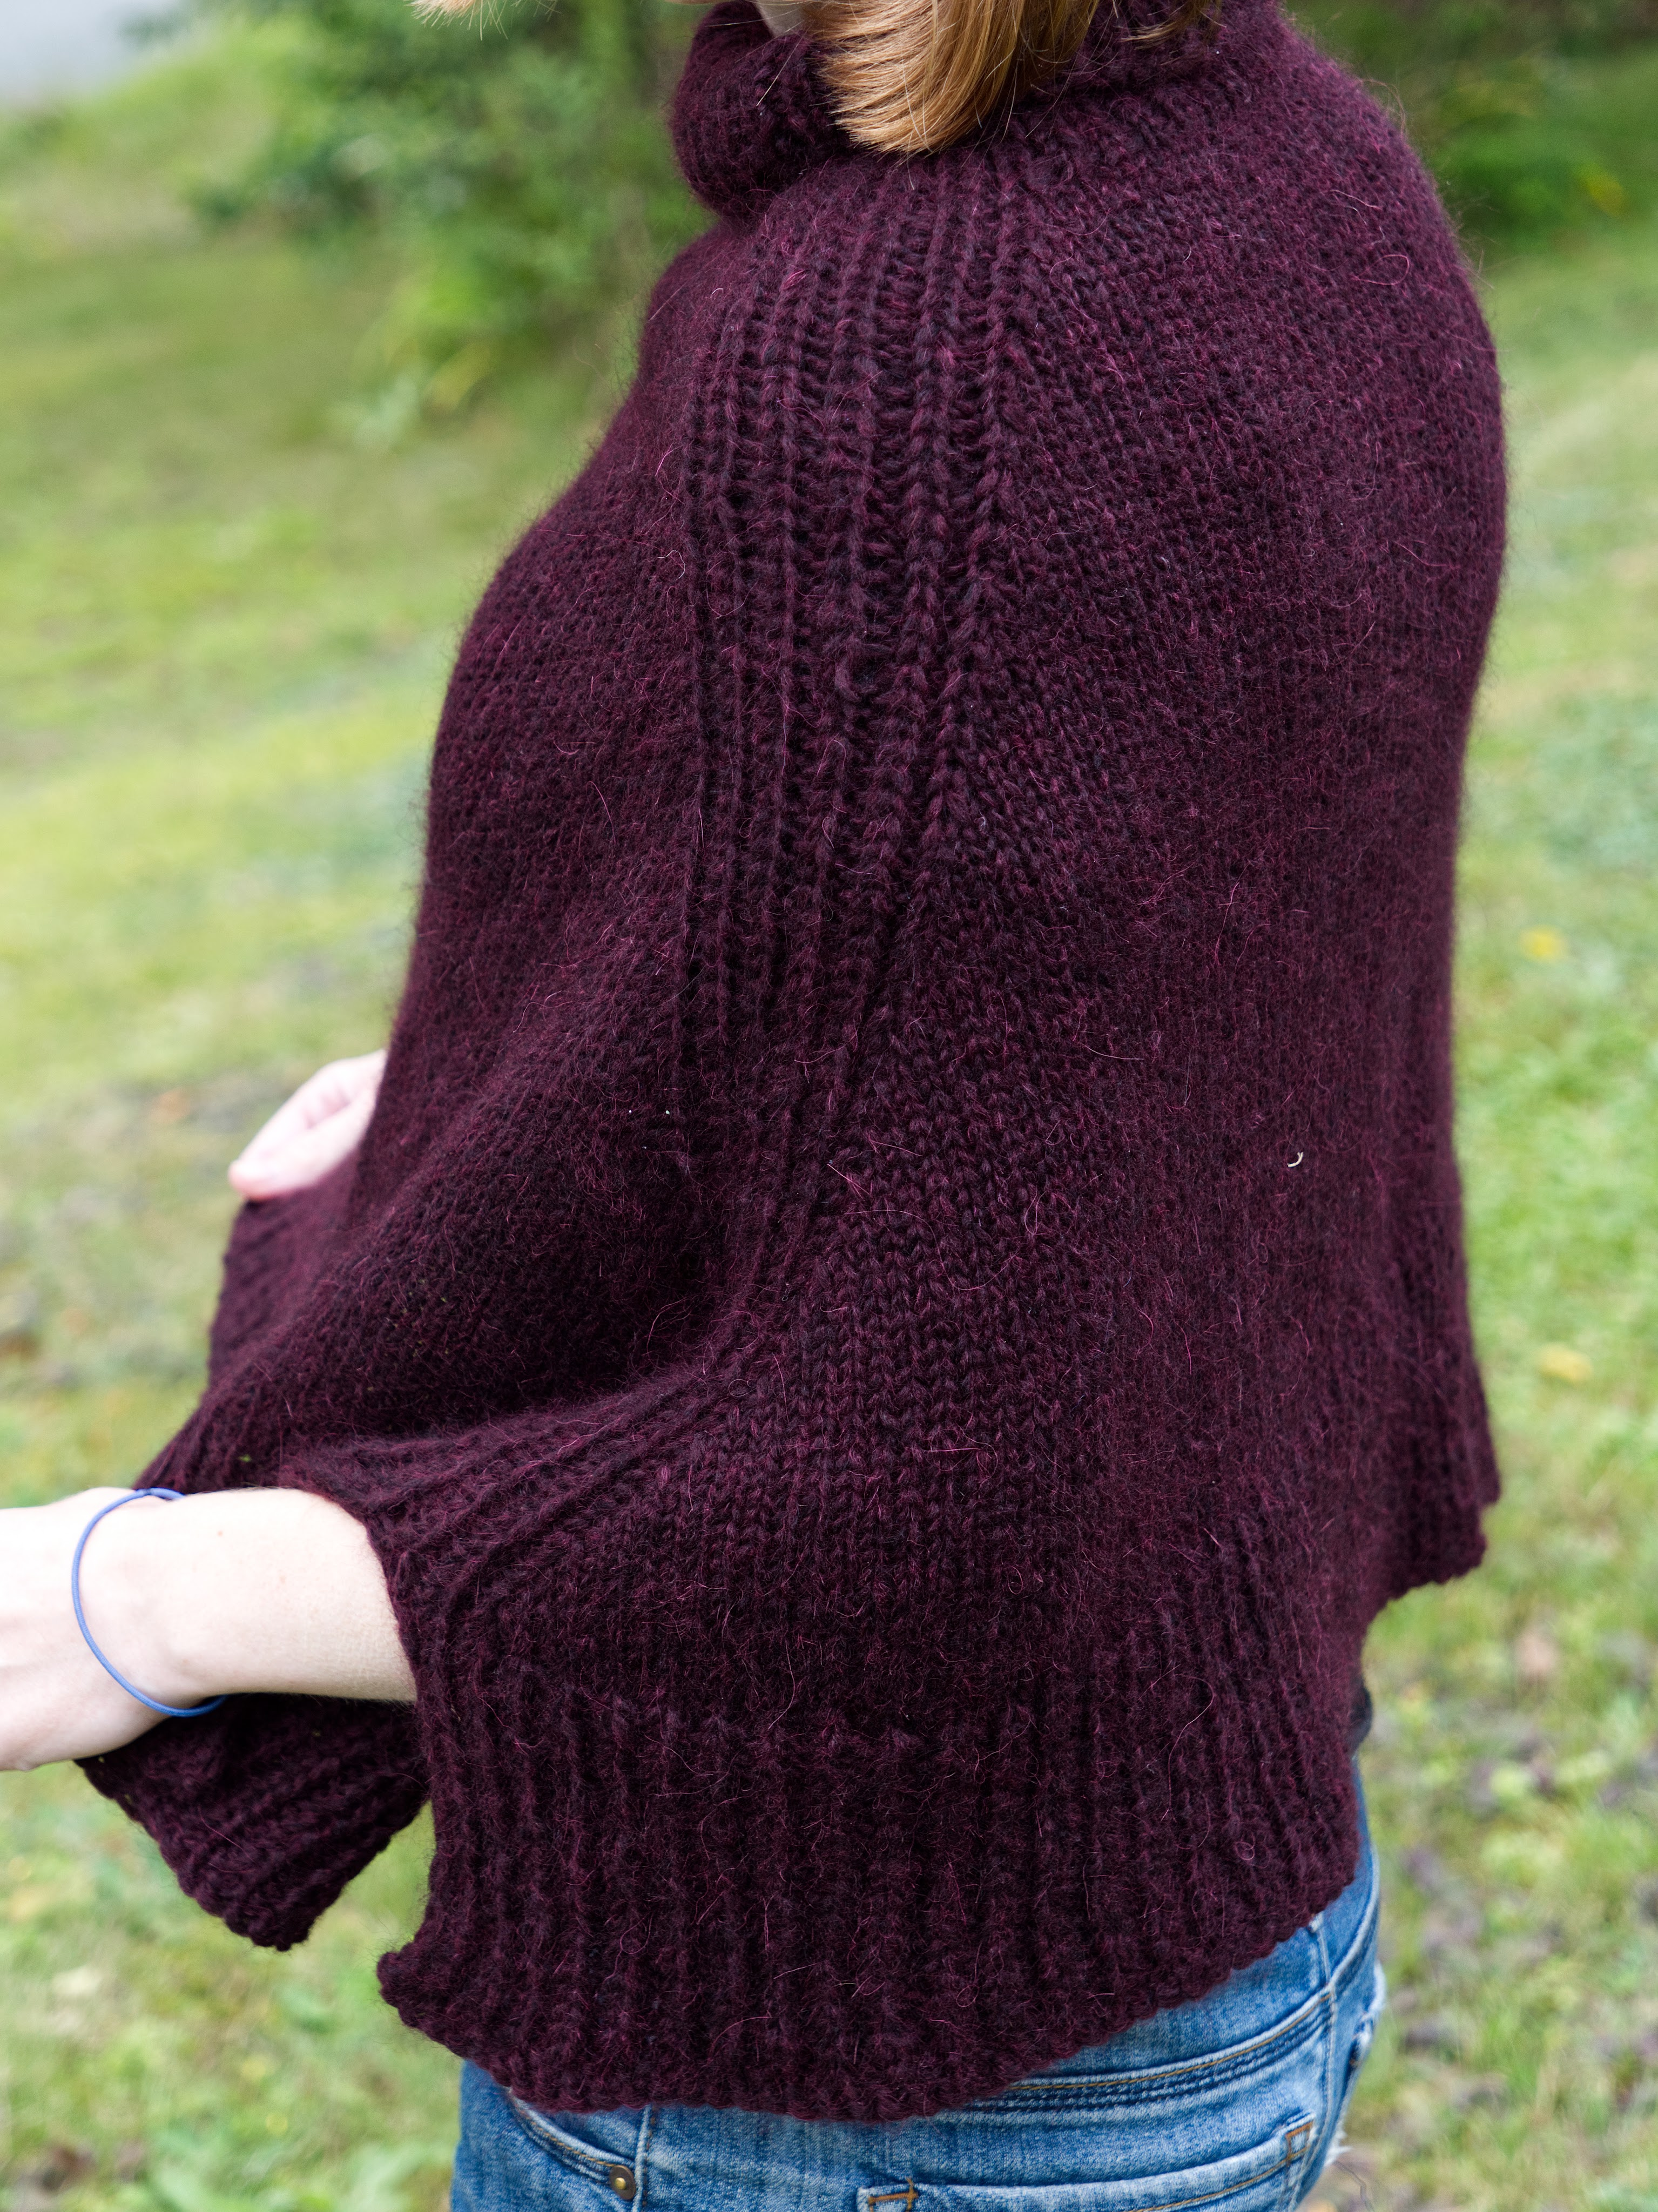 A young woman standing sideways to the camera holding the bottom edge of her plum poncho away from her body.